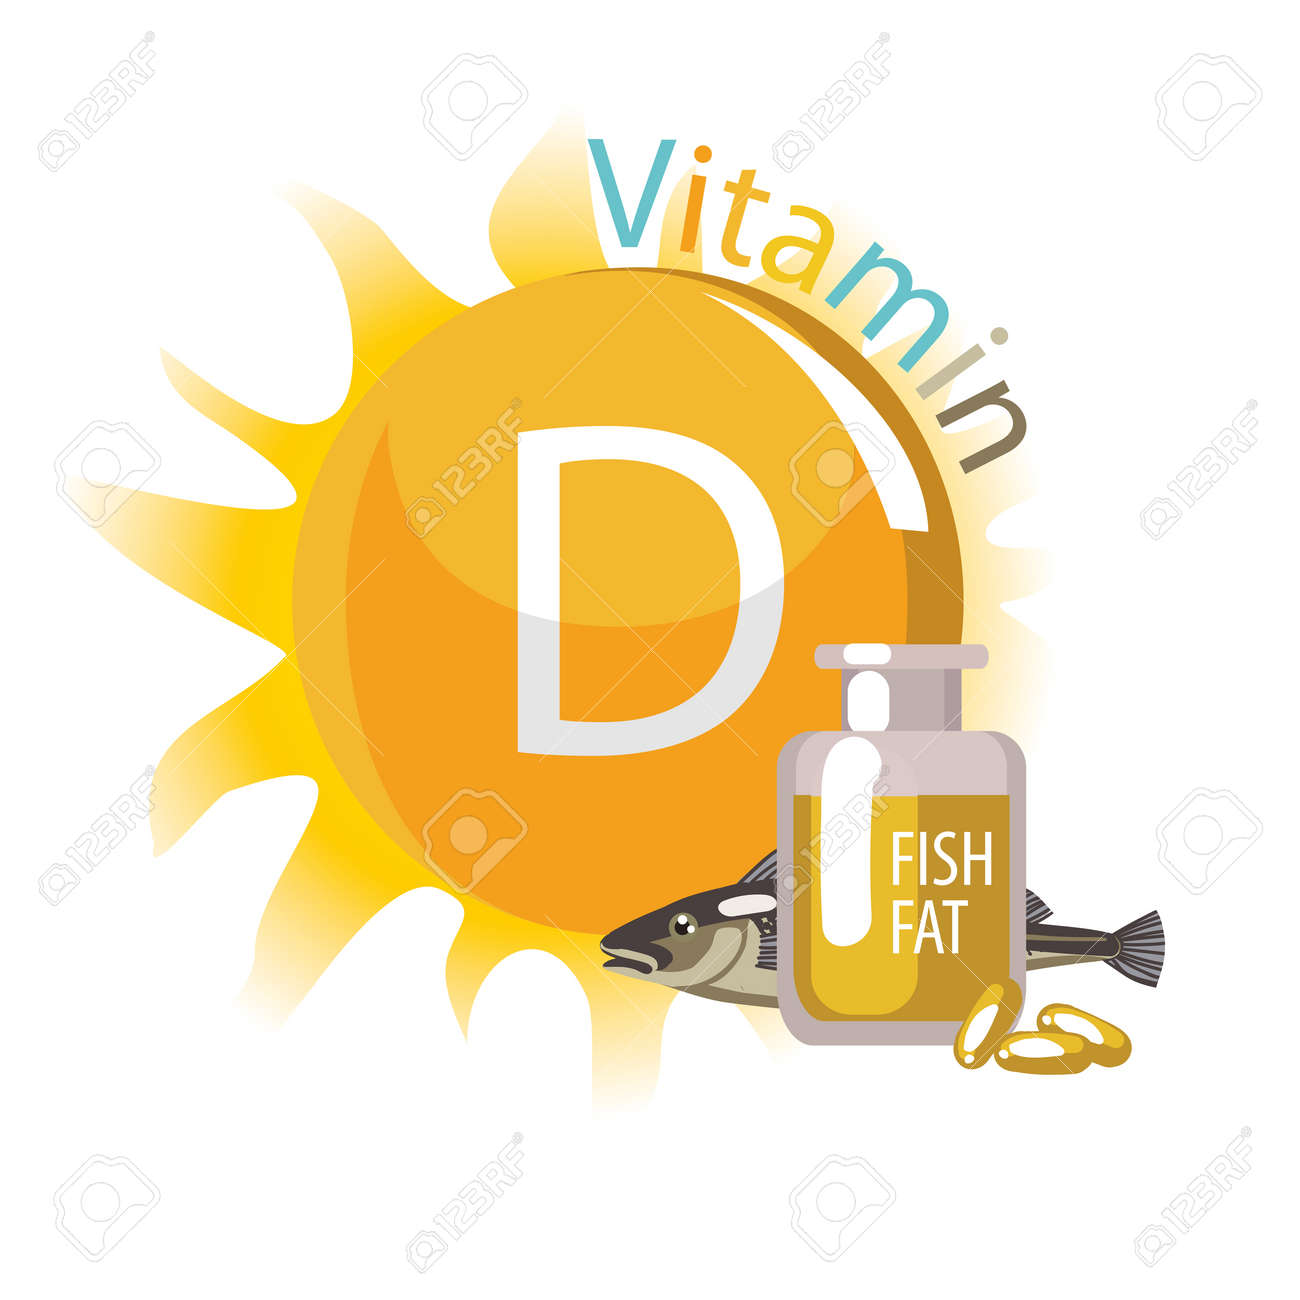 Vitamin D Sources The Sun And Fish Oil Royalty Free Cliparts Vectors And Stock Illustration Image 94940724